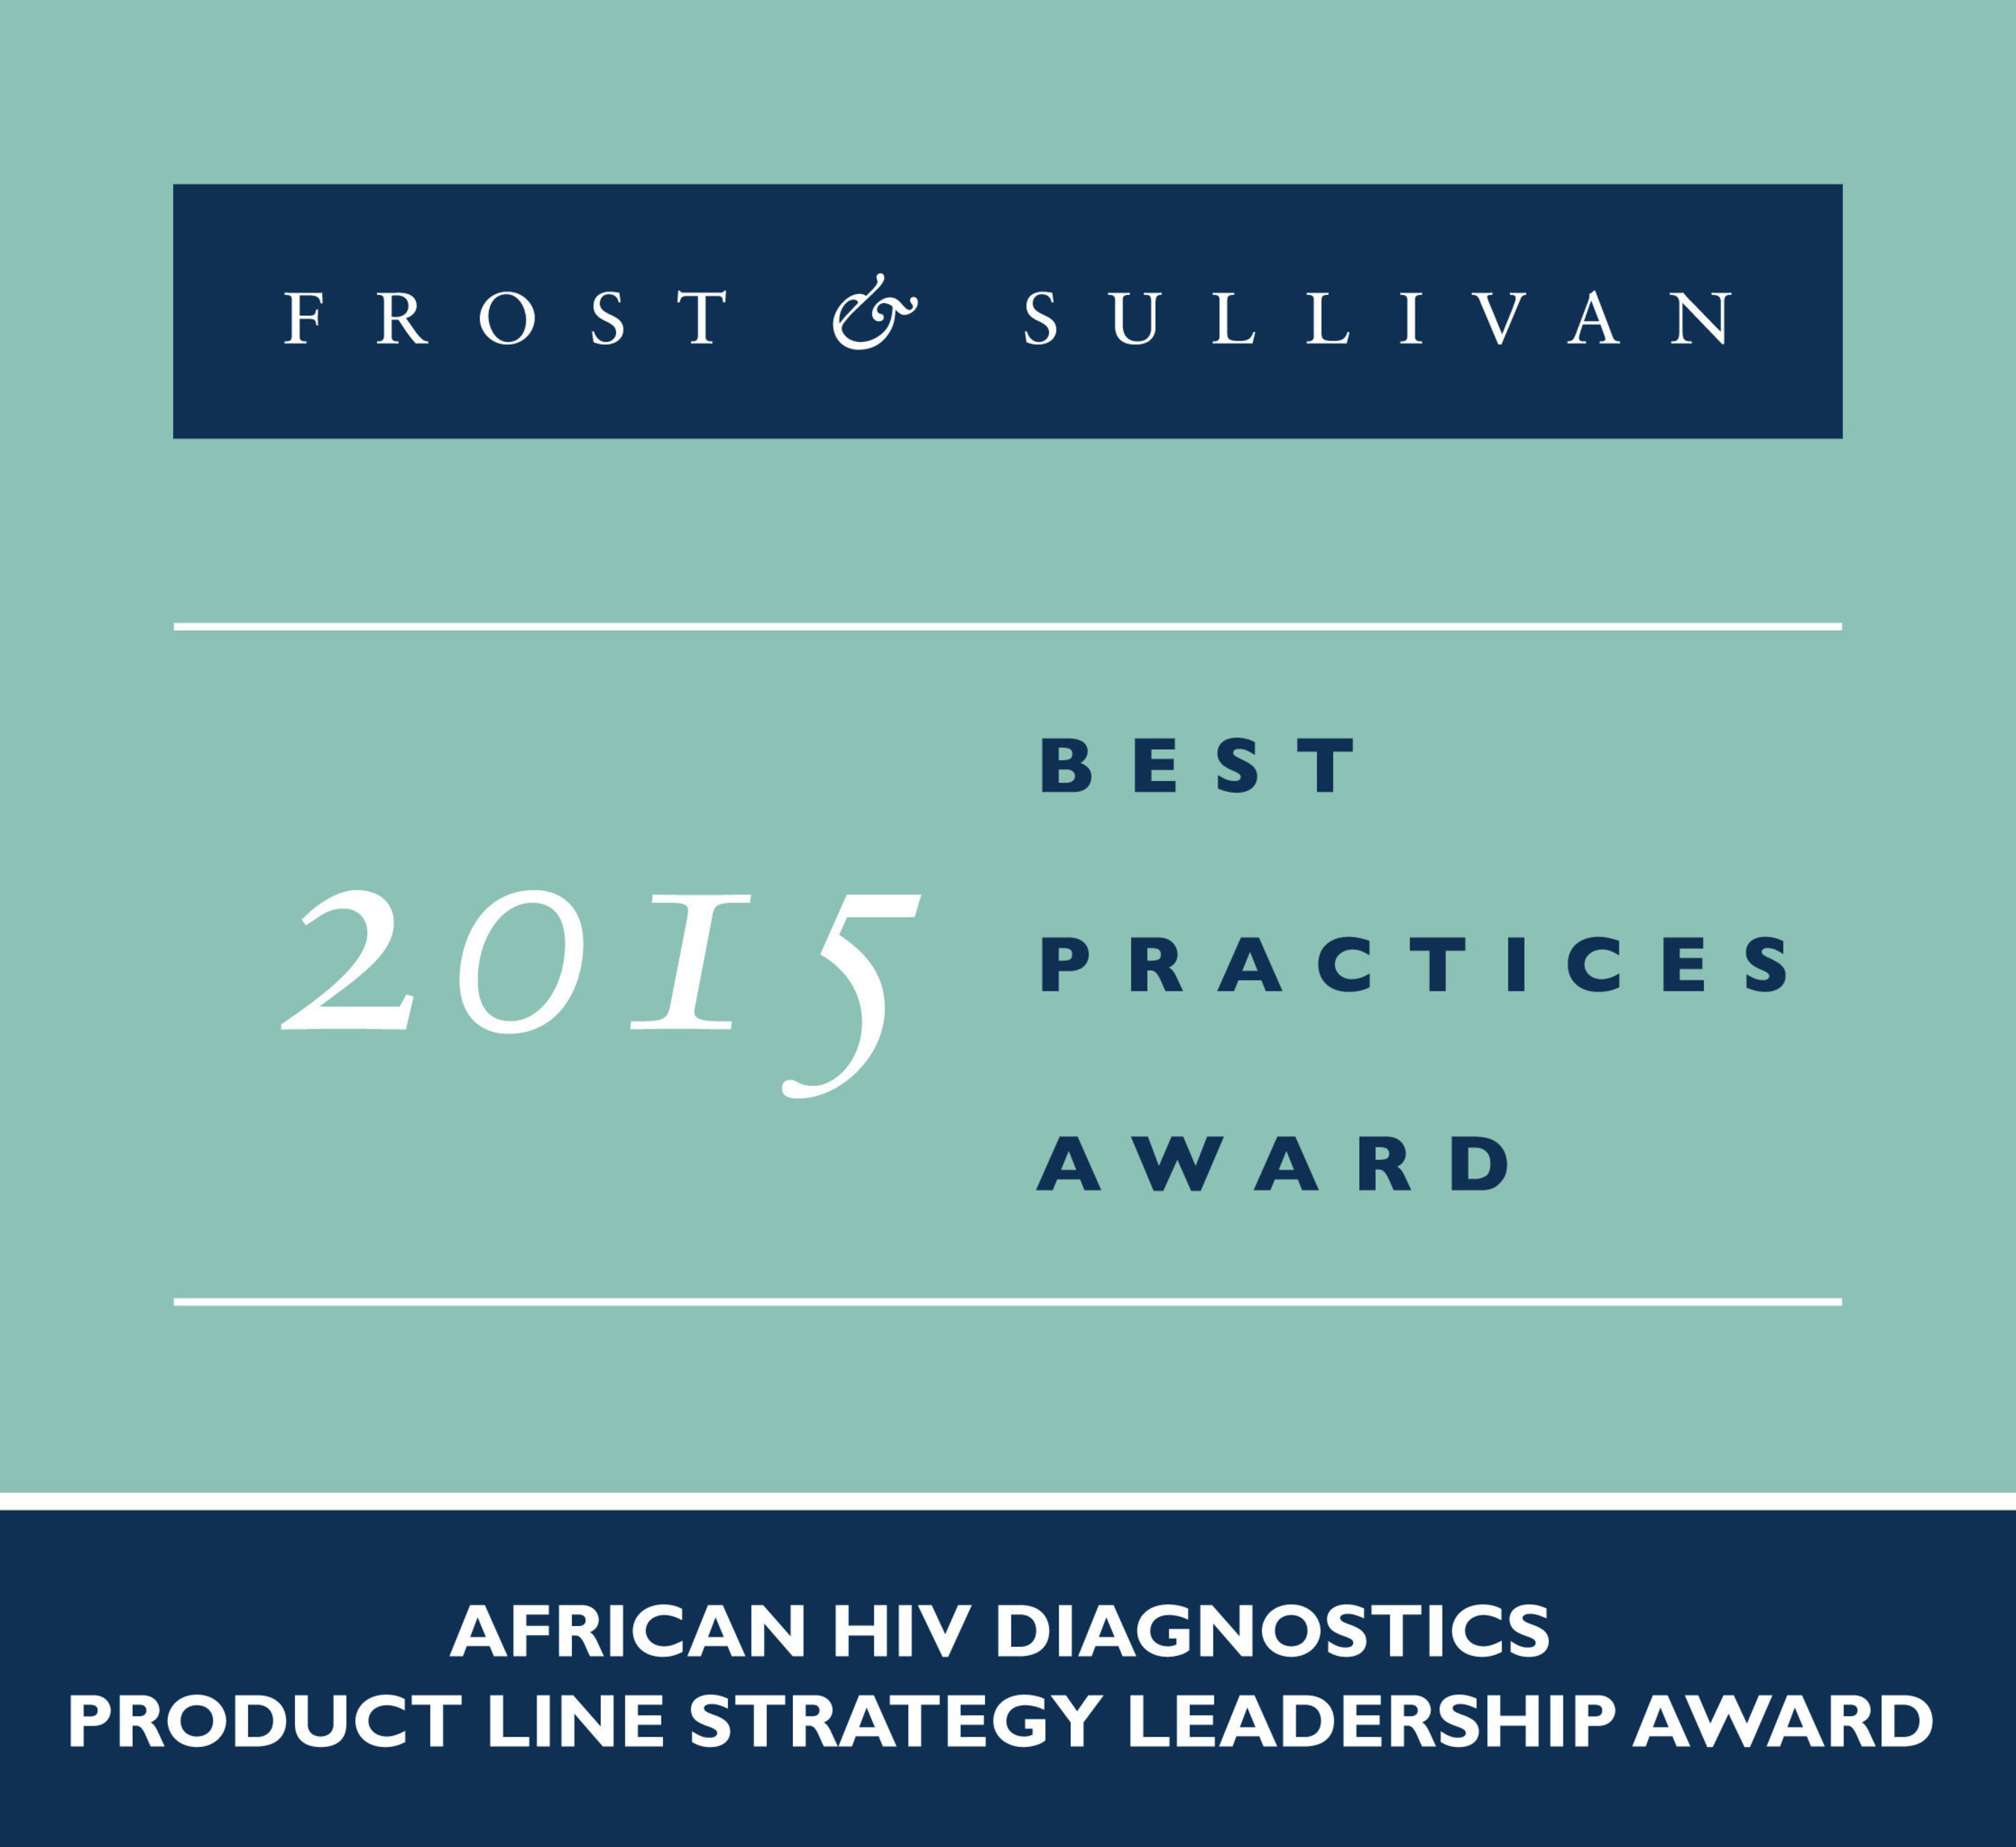 Frost & Sullivan Recognises Alere's Wide Palette of HIV Diagnostics Products with Cutting-edge